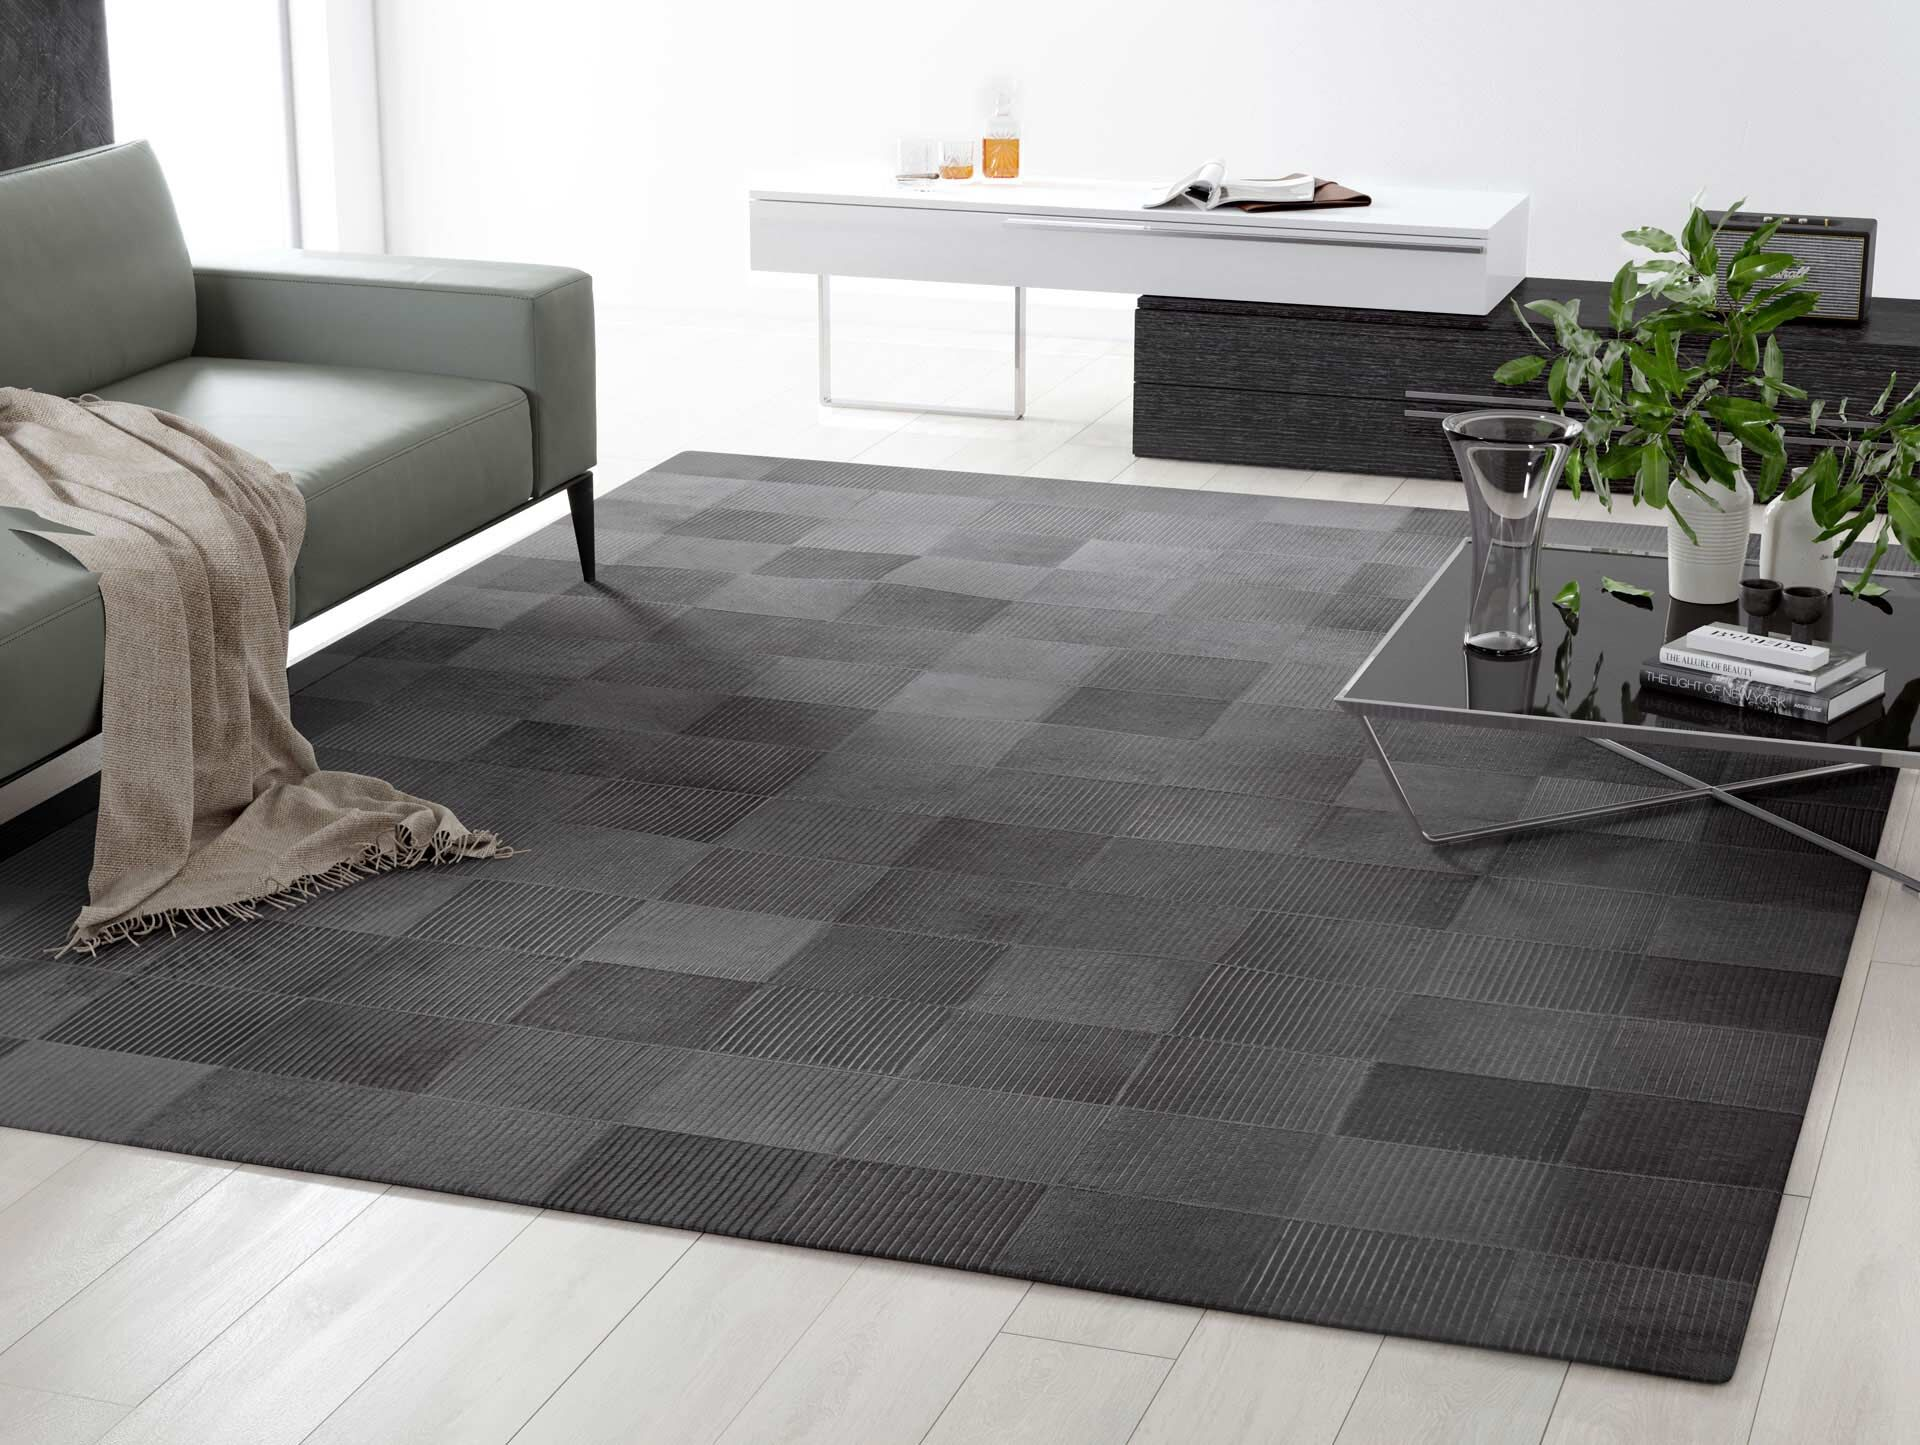 Laser Lines Cowhide Hand-Woven Lead Gray Area Rug Rug Size: 8' x 10'